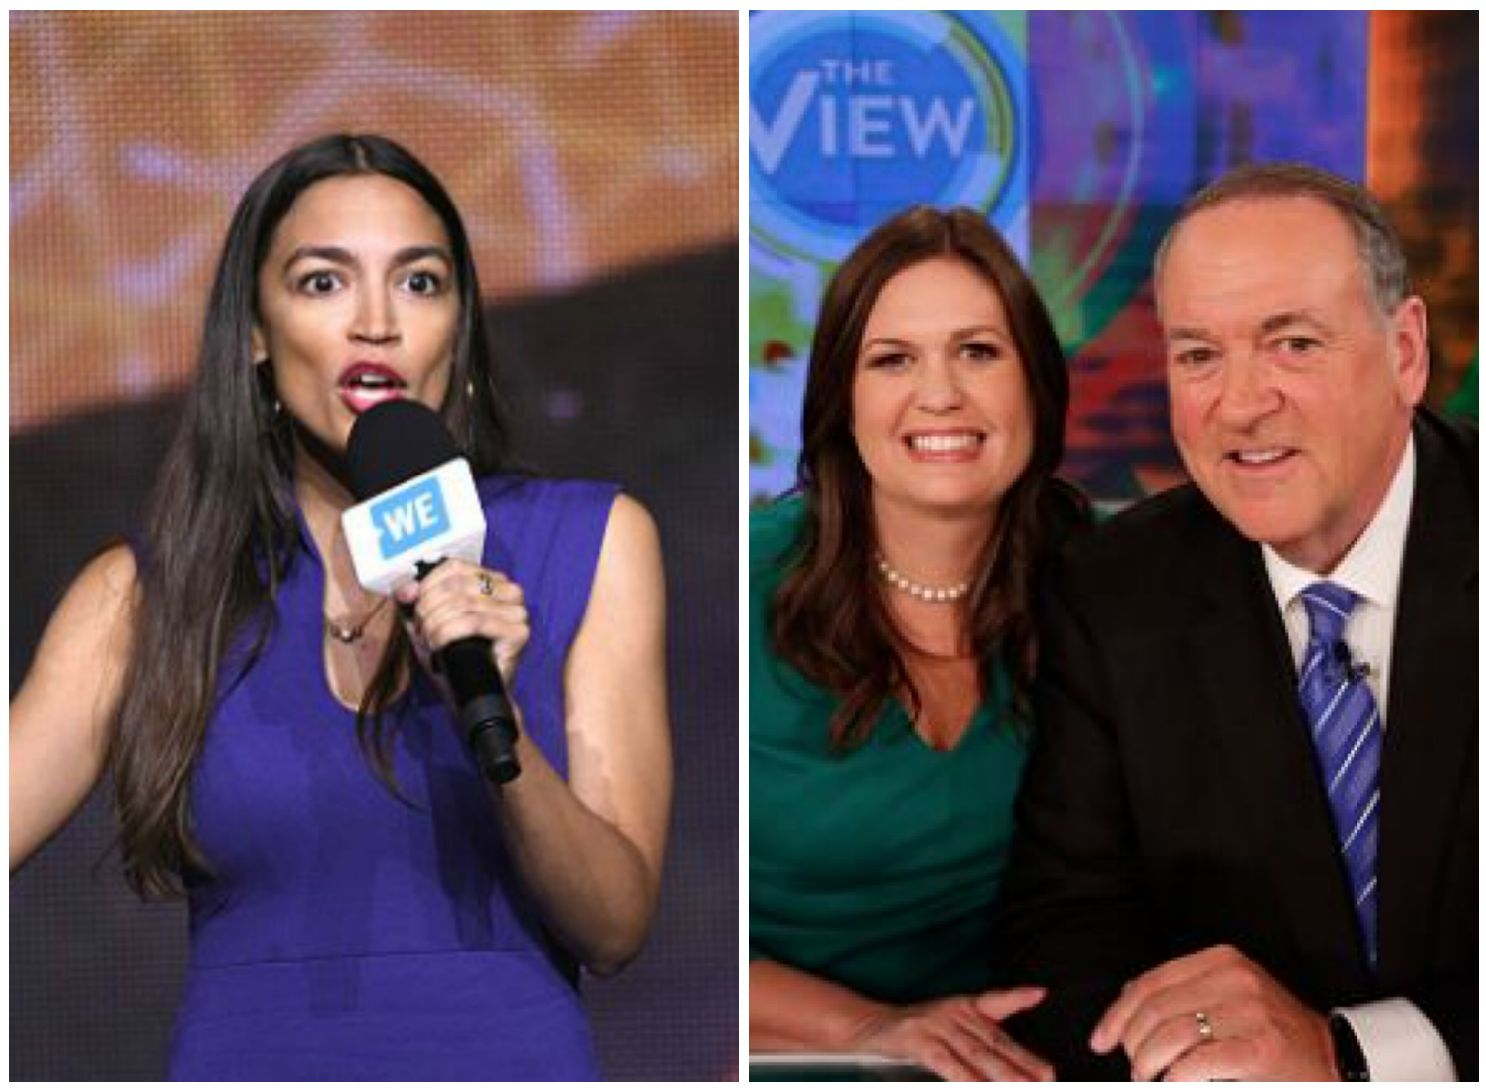 Alexandria Ocasio-Cortez Tells Mike Huckabee To Leave 'False Statements To